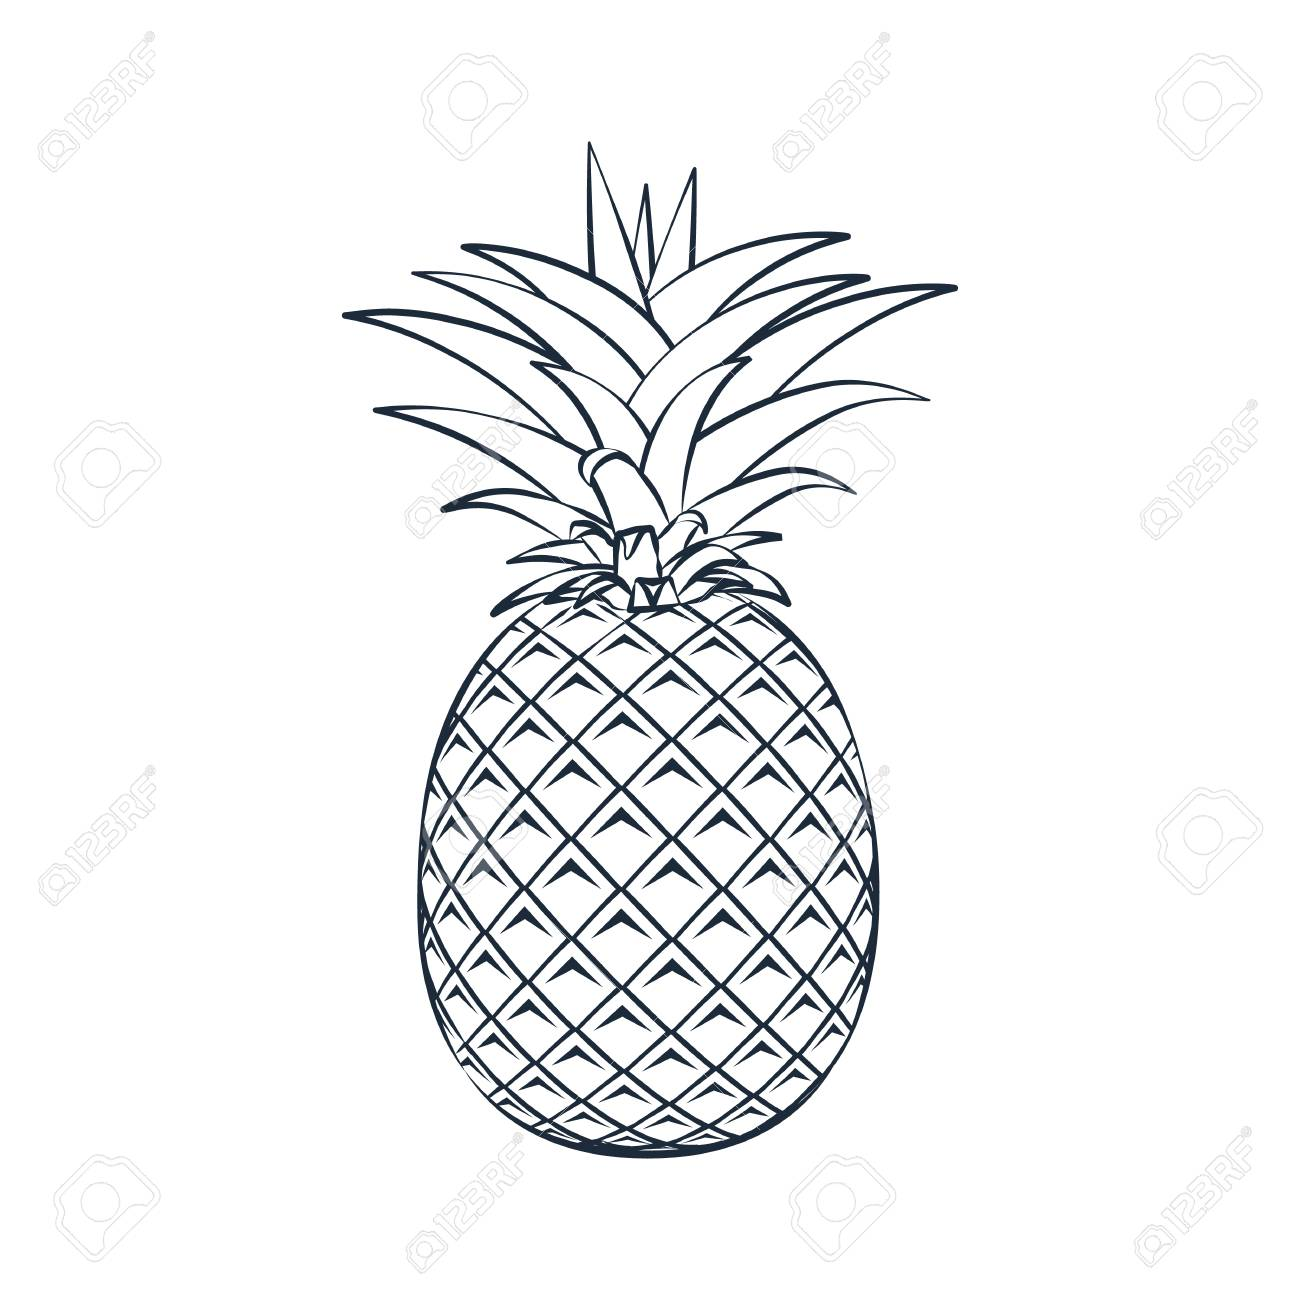 Pineapple Silhouette Outline.